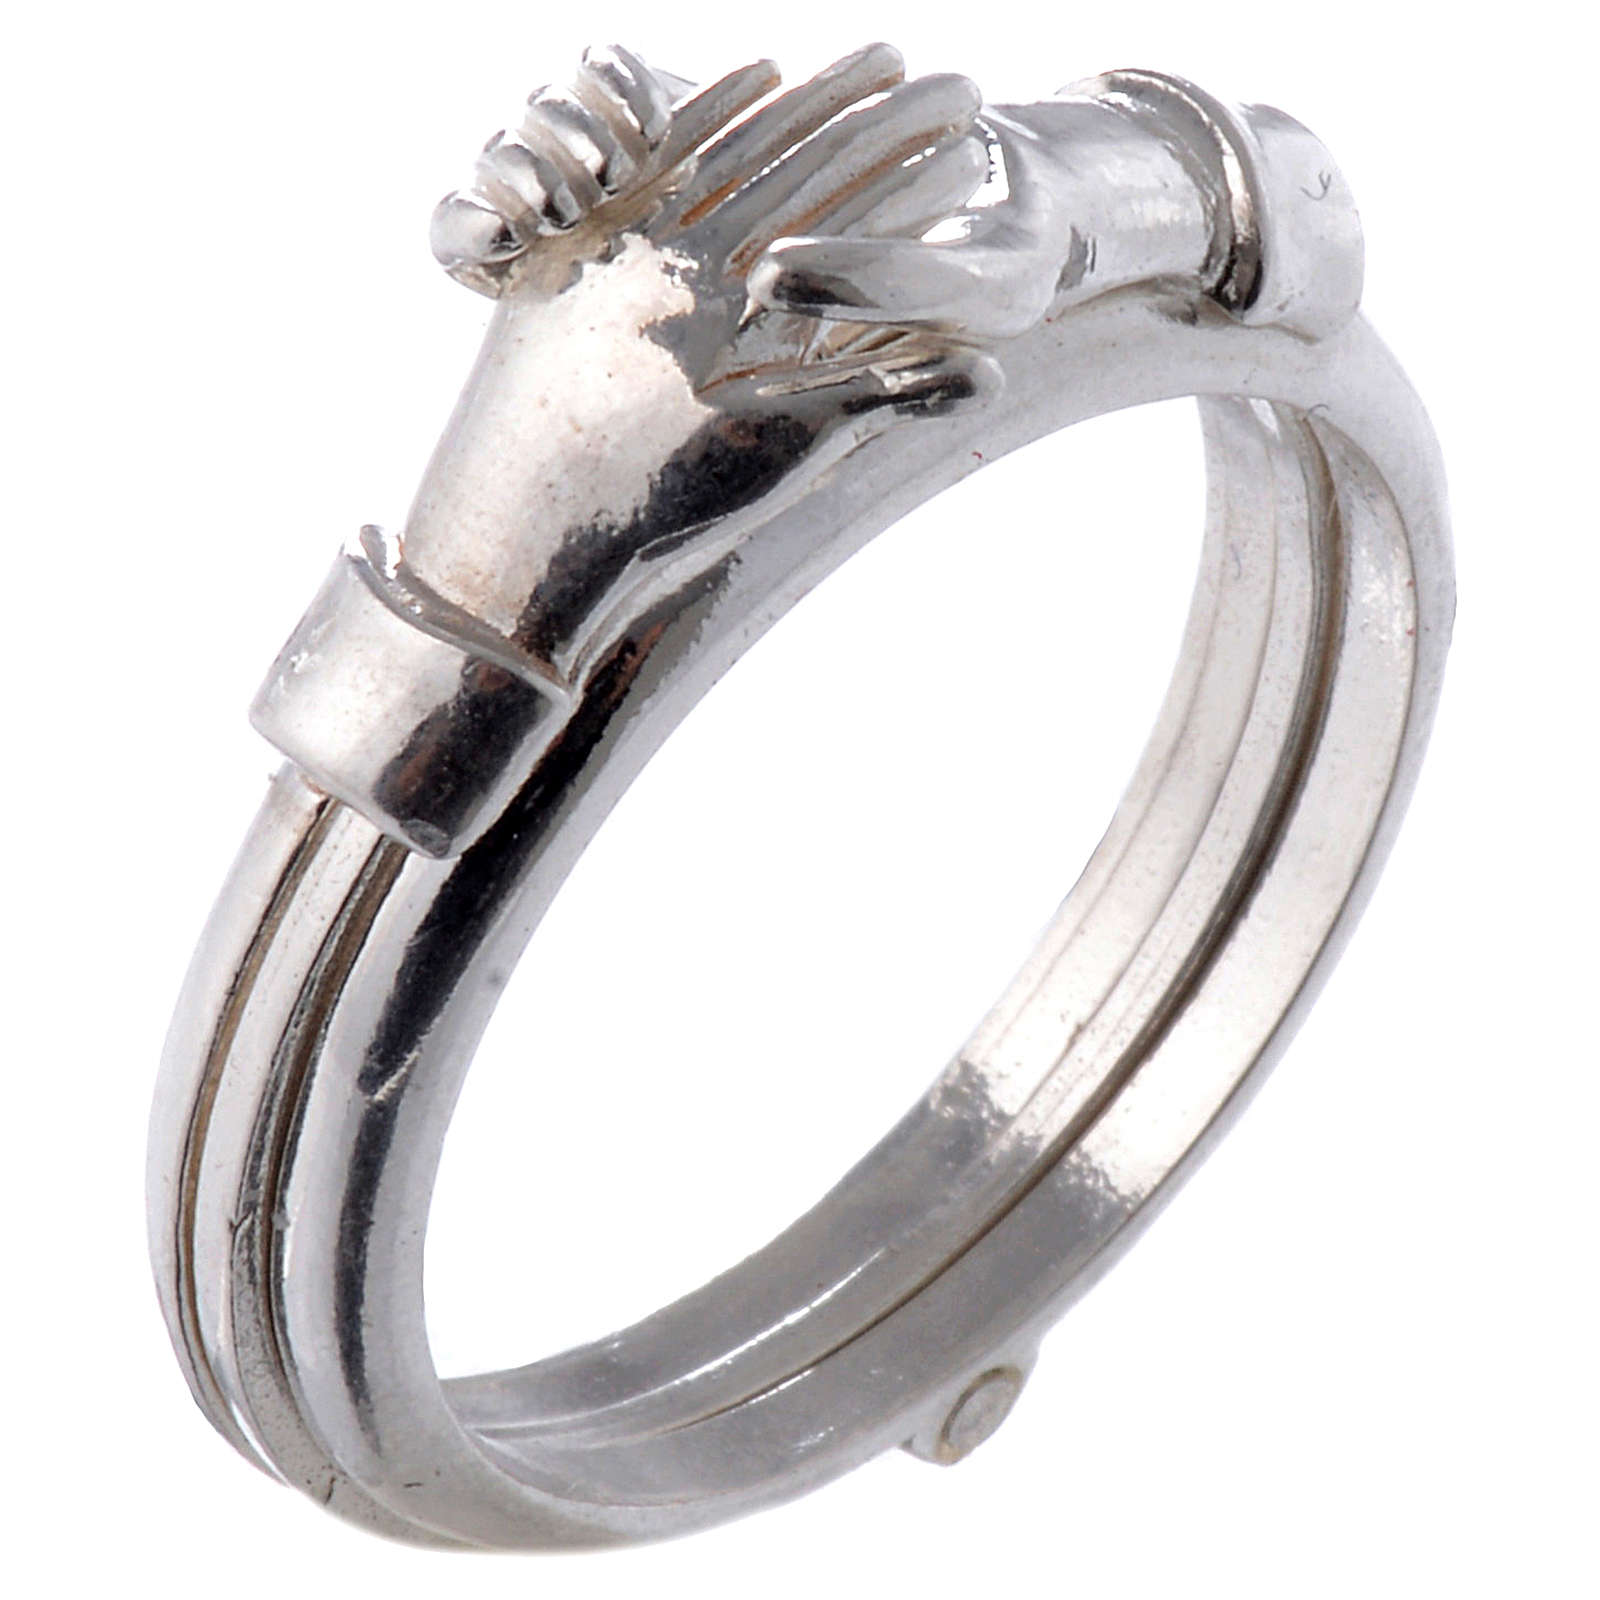 Ring in 800 silver with 2 hands which can be opened 3